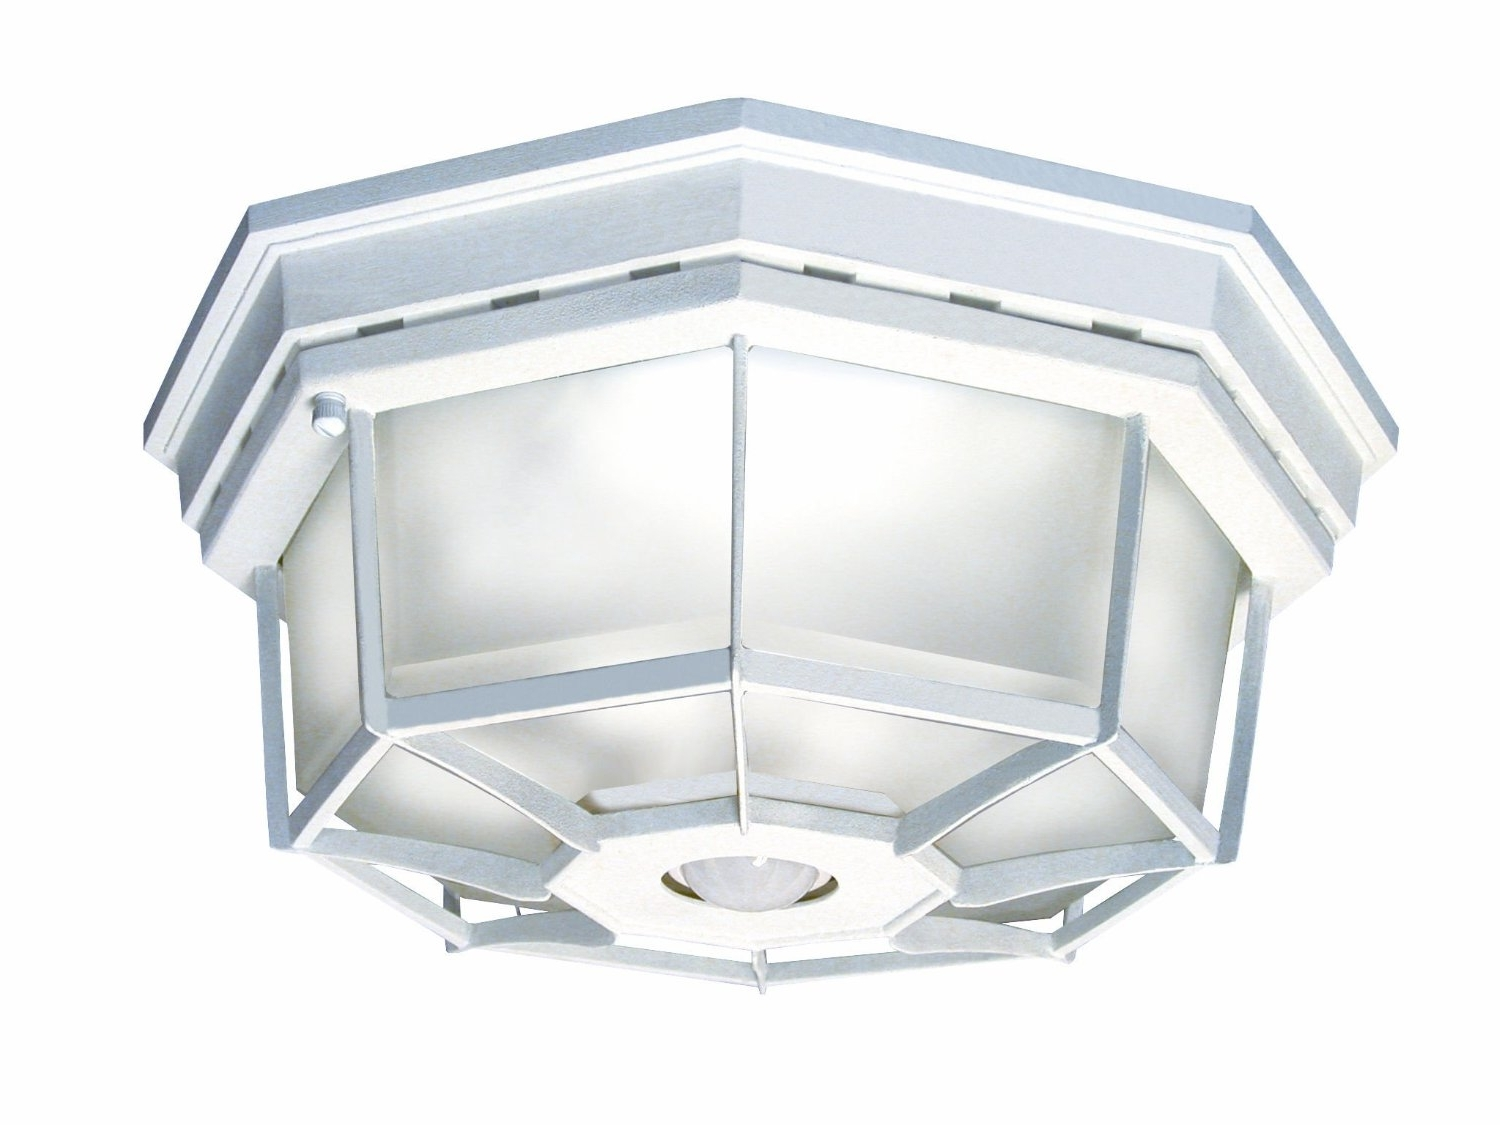 Outdoor Ceiling Light Motion Sensor (View 4 of 20)